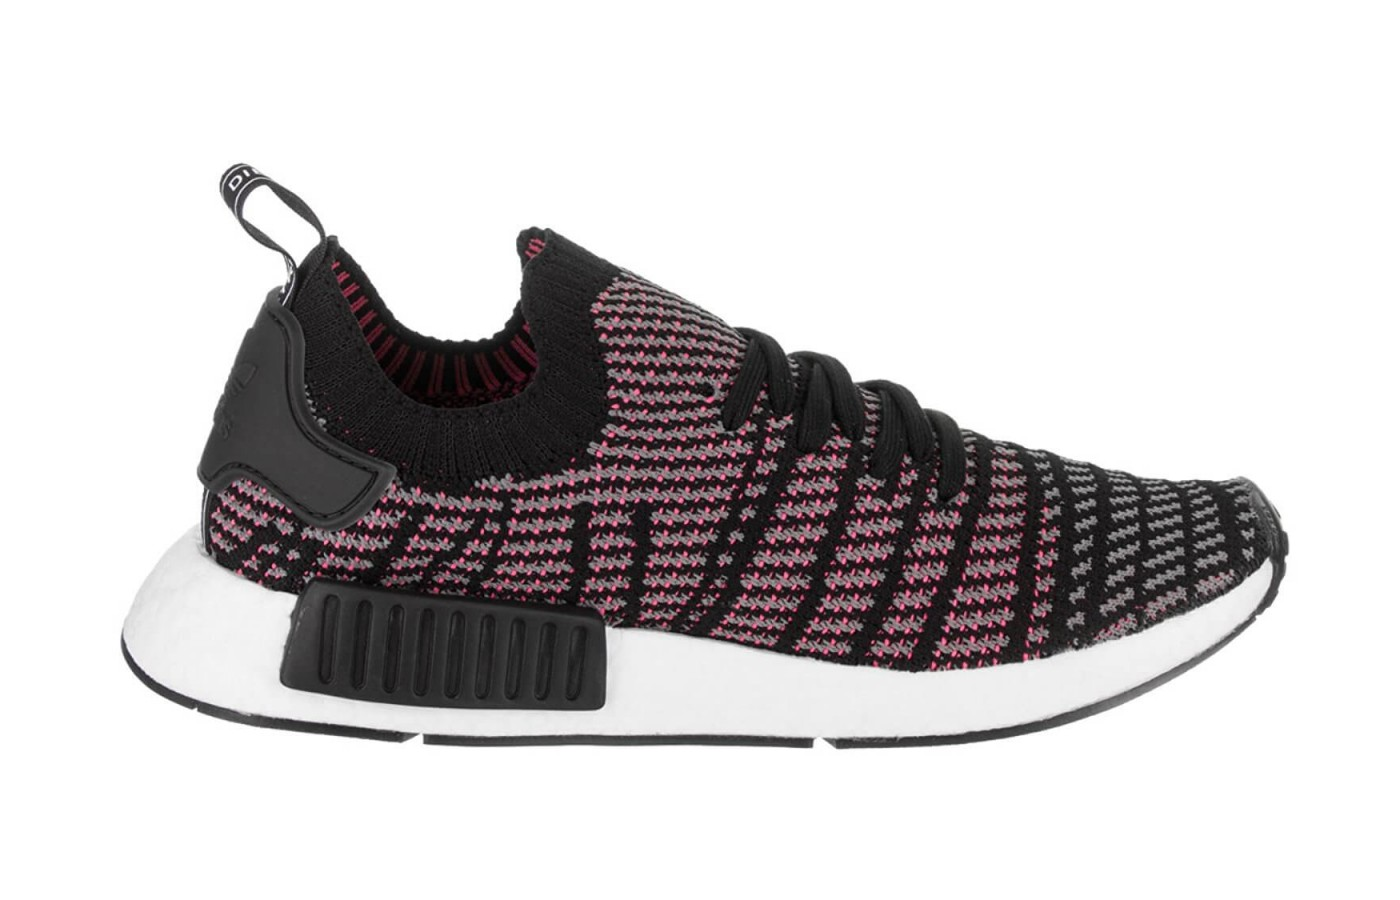 eae097f5030d5 ... The Adidas NMD R1 Stlt Primeknit features a Boost midsole ...